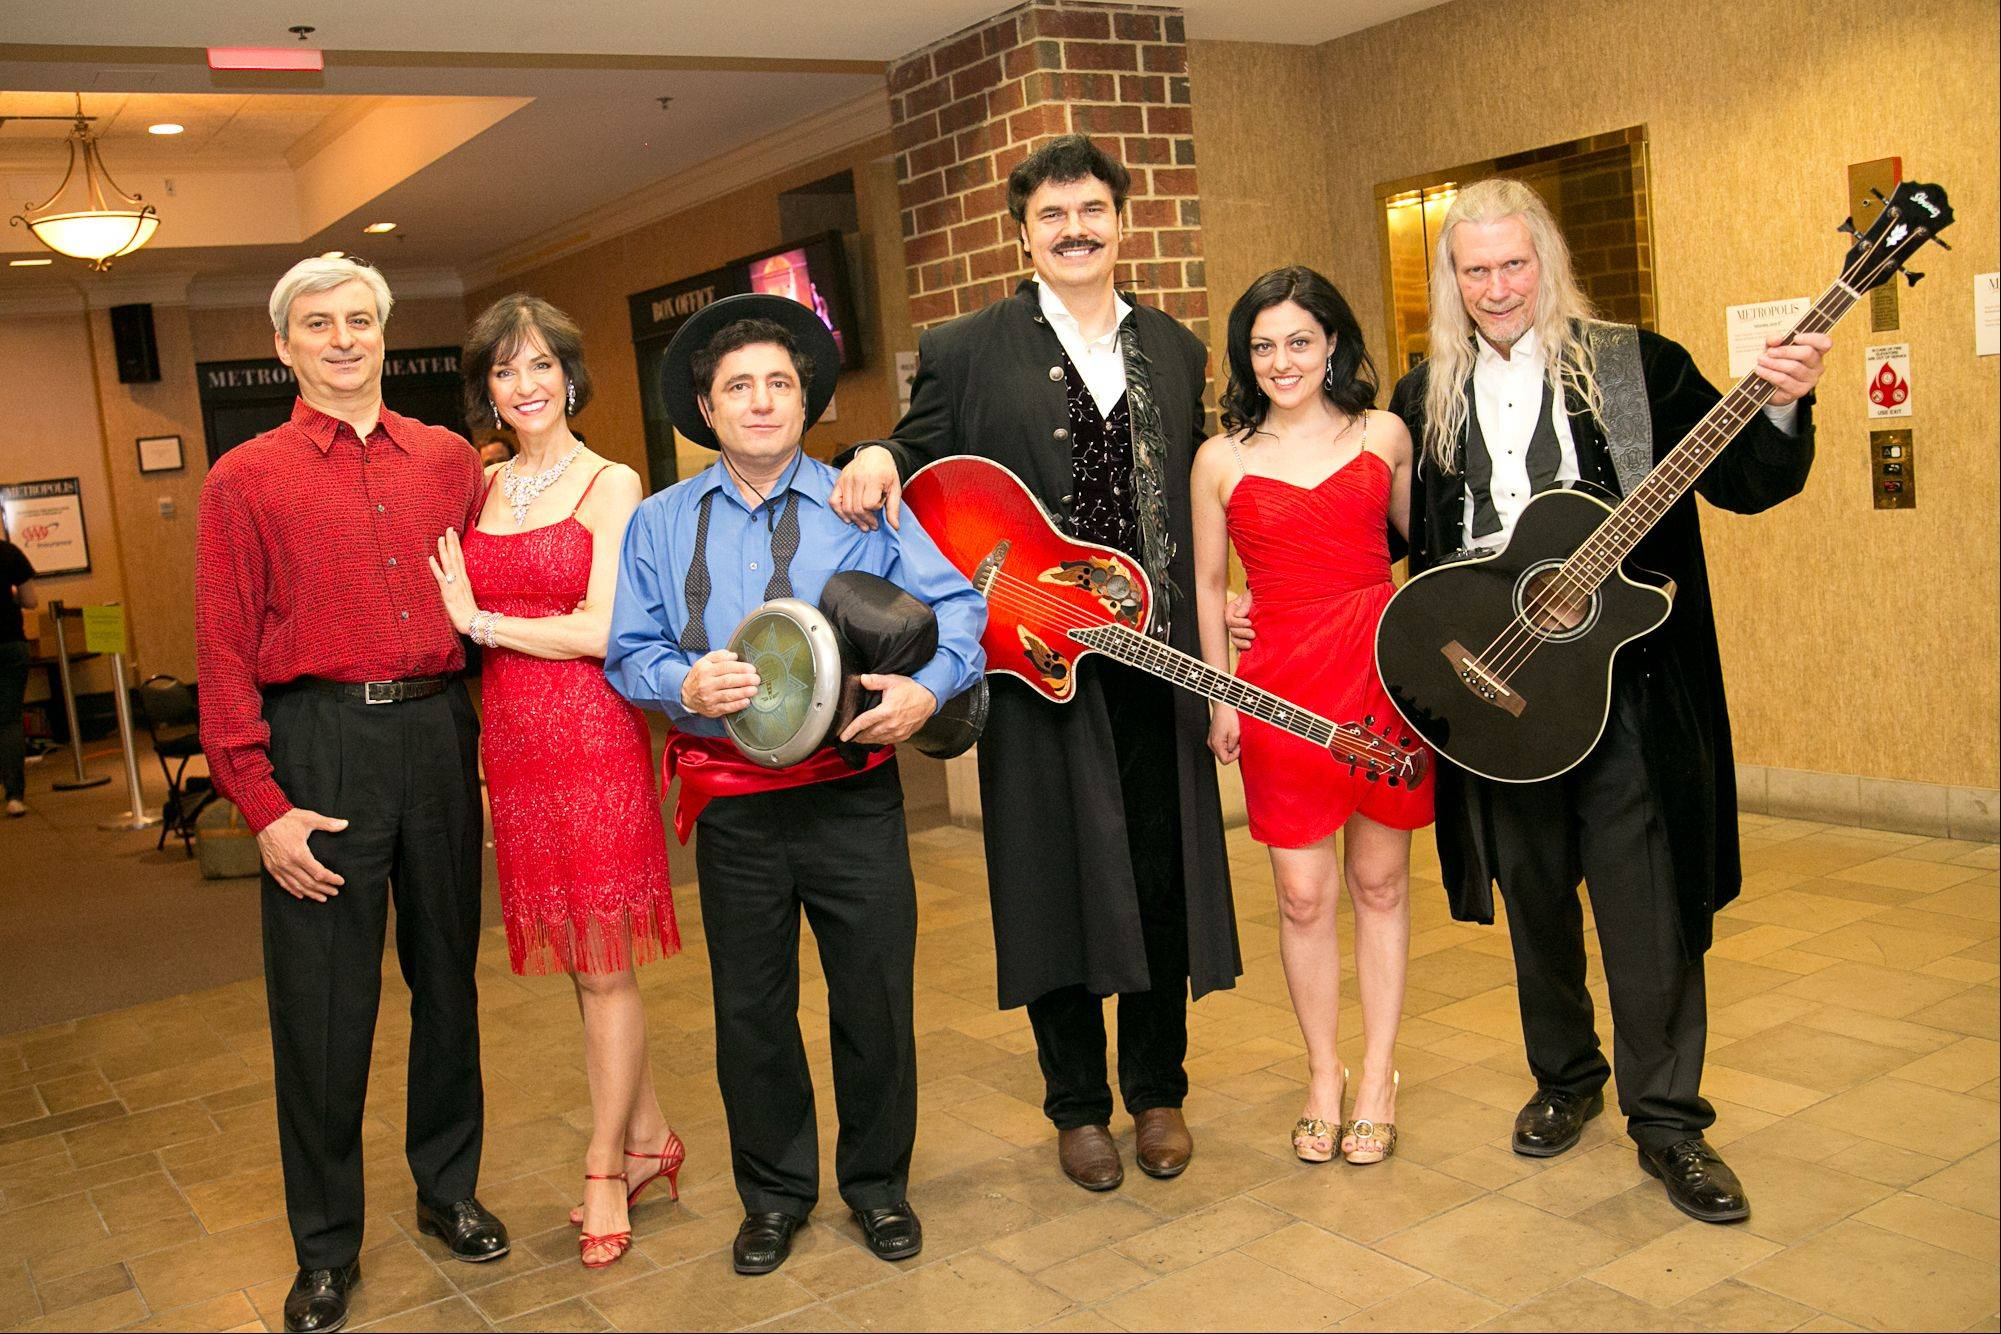 Among the Top 30 finalists for Suburban Chicago's Got Talent is the band Tempest Rising, featuring, from left, Gene Bayer of Chicago, Suzi Tillman of Chicago, Victor Varjan of Chicago, John Koziol of Lake Forest, Bryna Tillman of Chicago and Art Scheer of Niles.